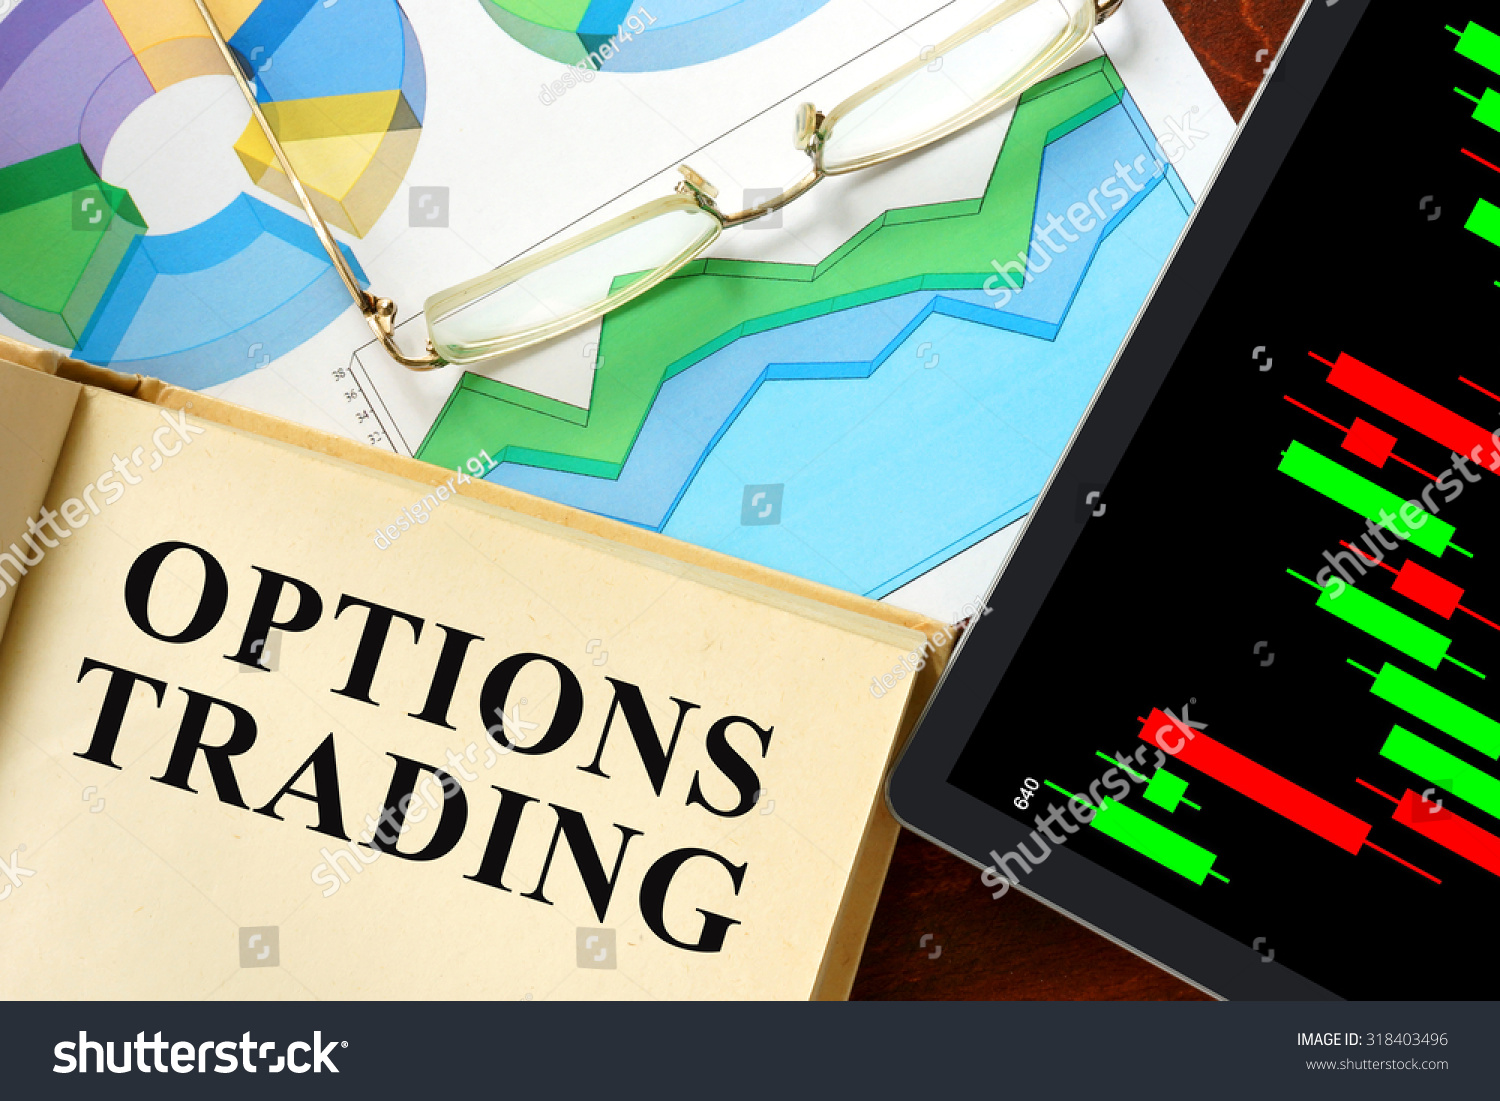 Best options trades